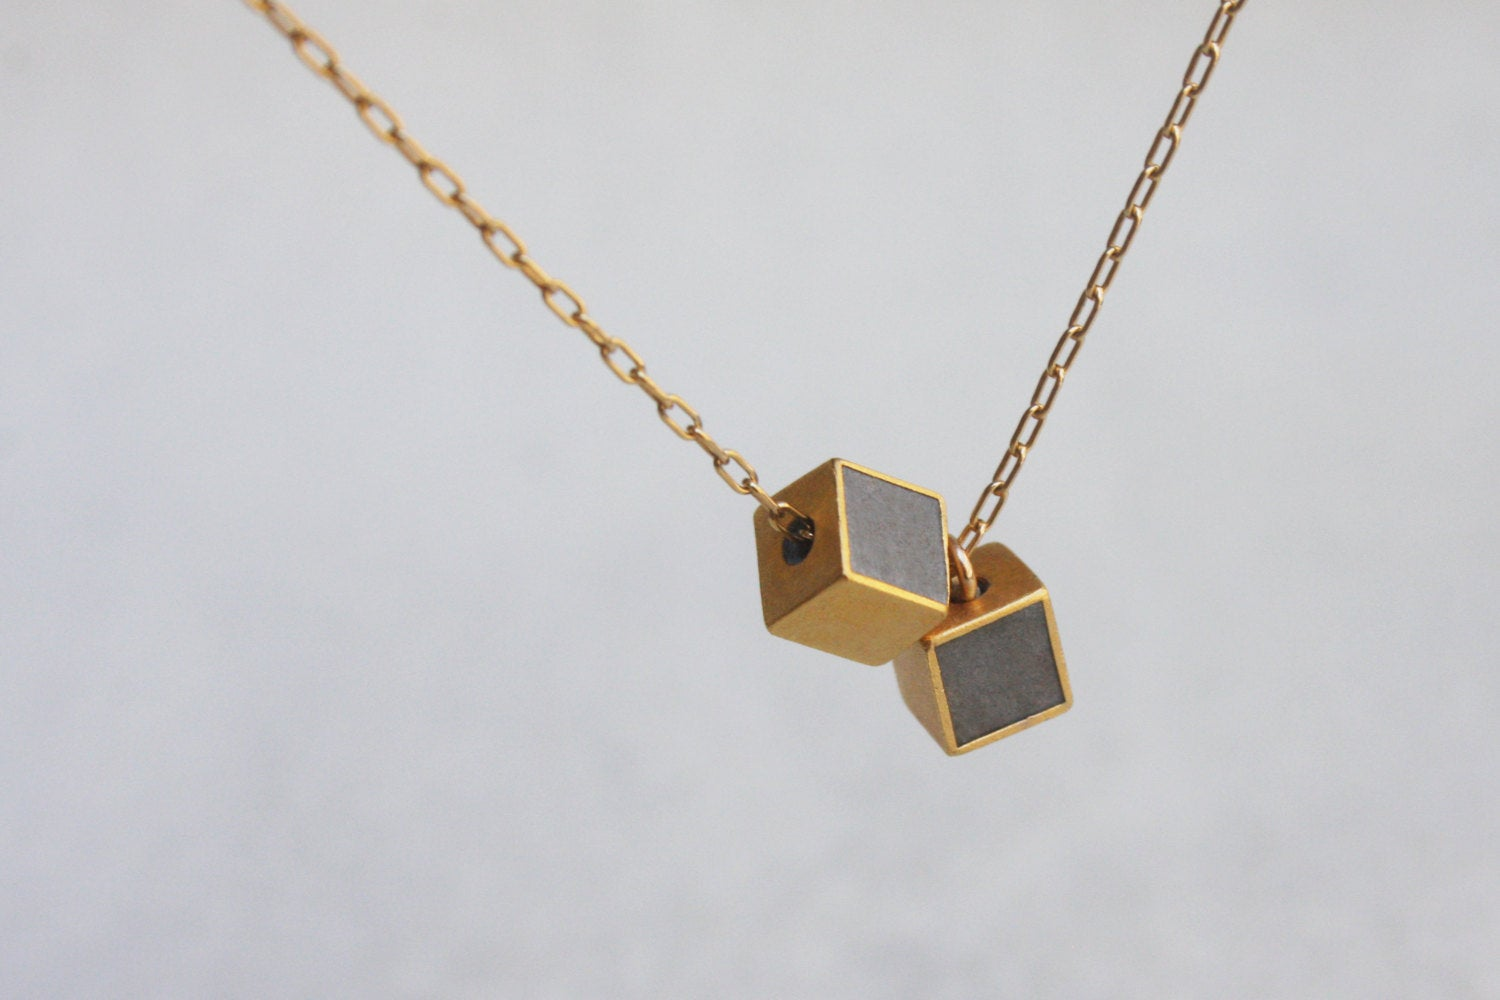 Concrete jewelry, Double cube Necklace, Tiny Gold Cube Necklace, Geometric Everyday necklace, Minimalist pendent, hadas shaham - hs